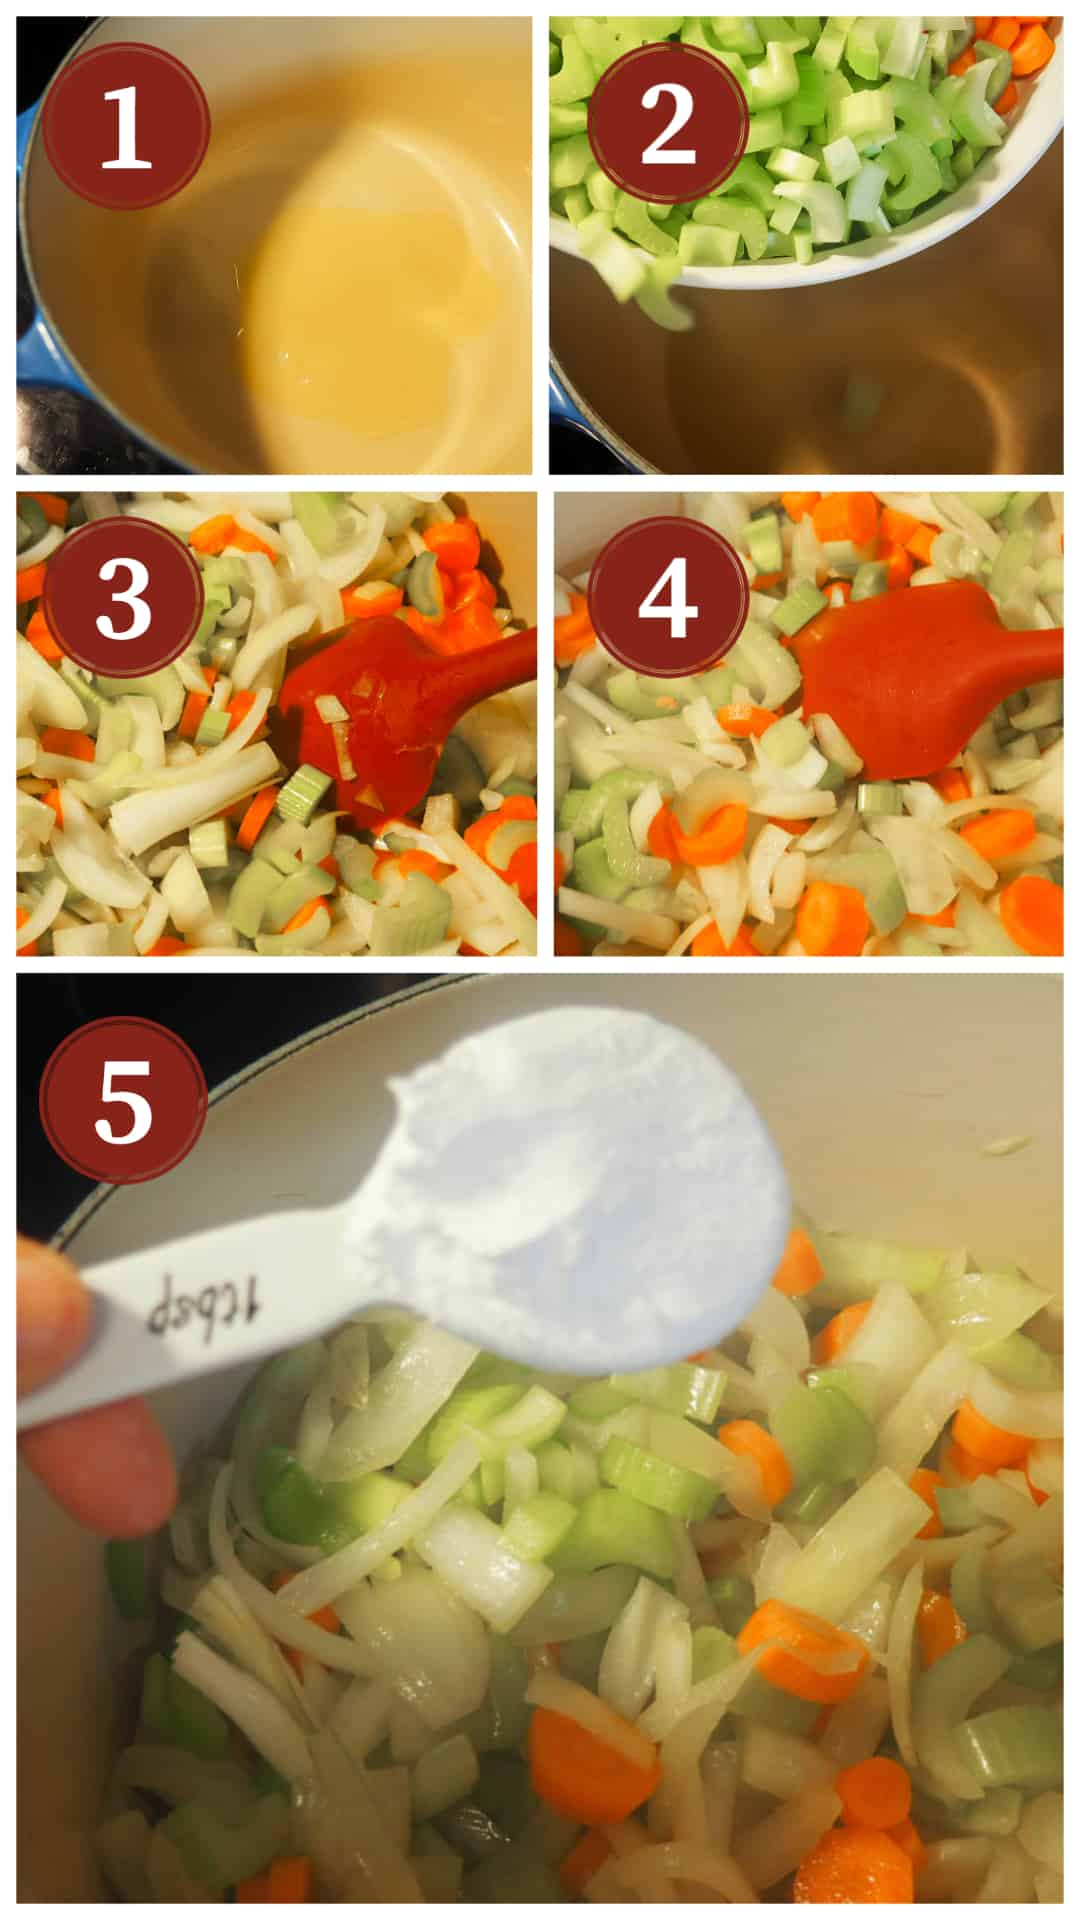 A collage of images showing the process of cooking paleo chicken noodle soup, steps 1 - 5.